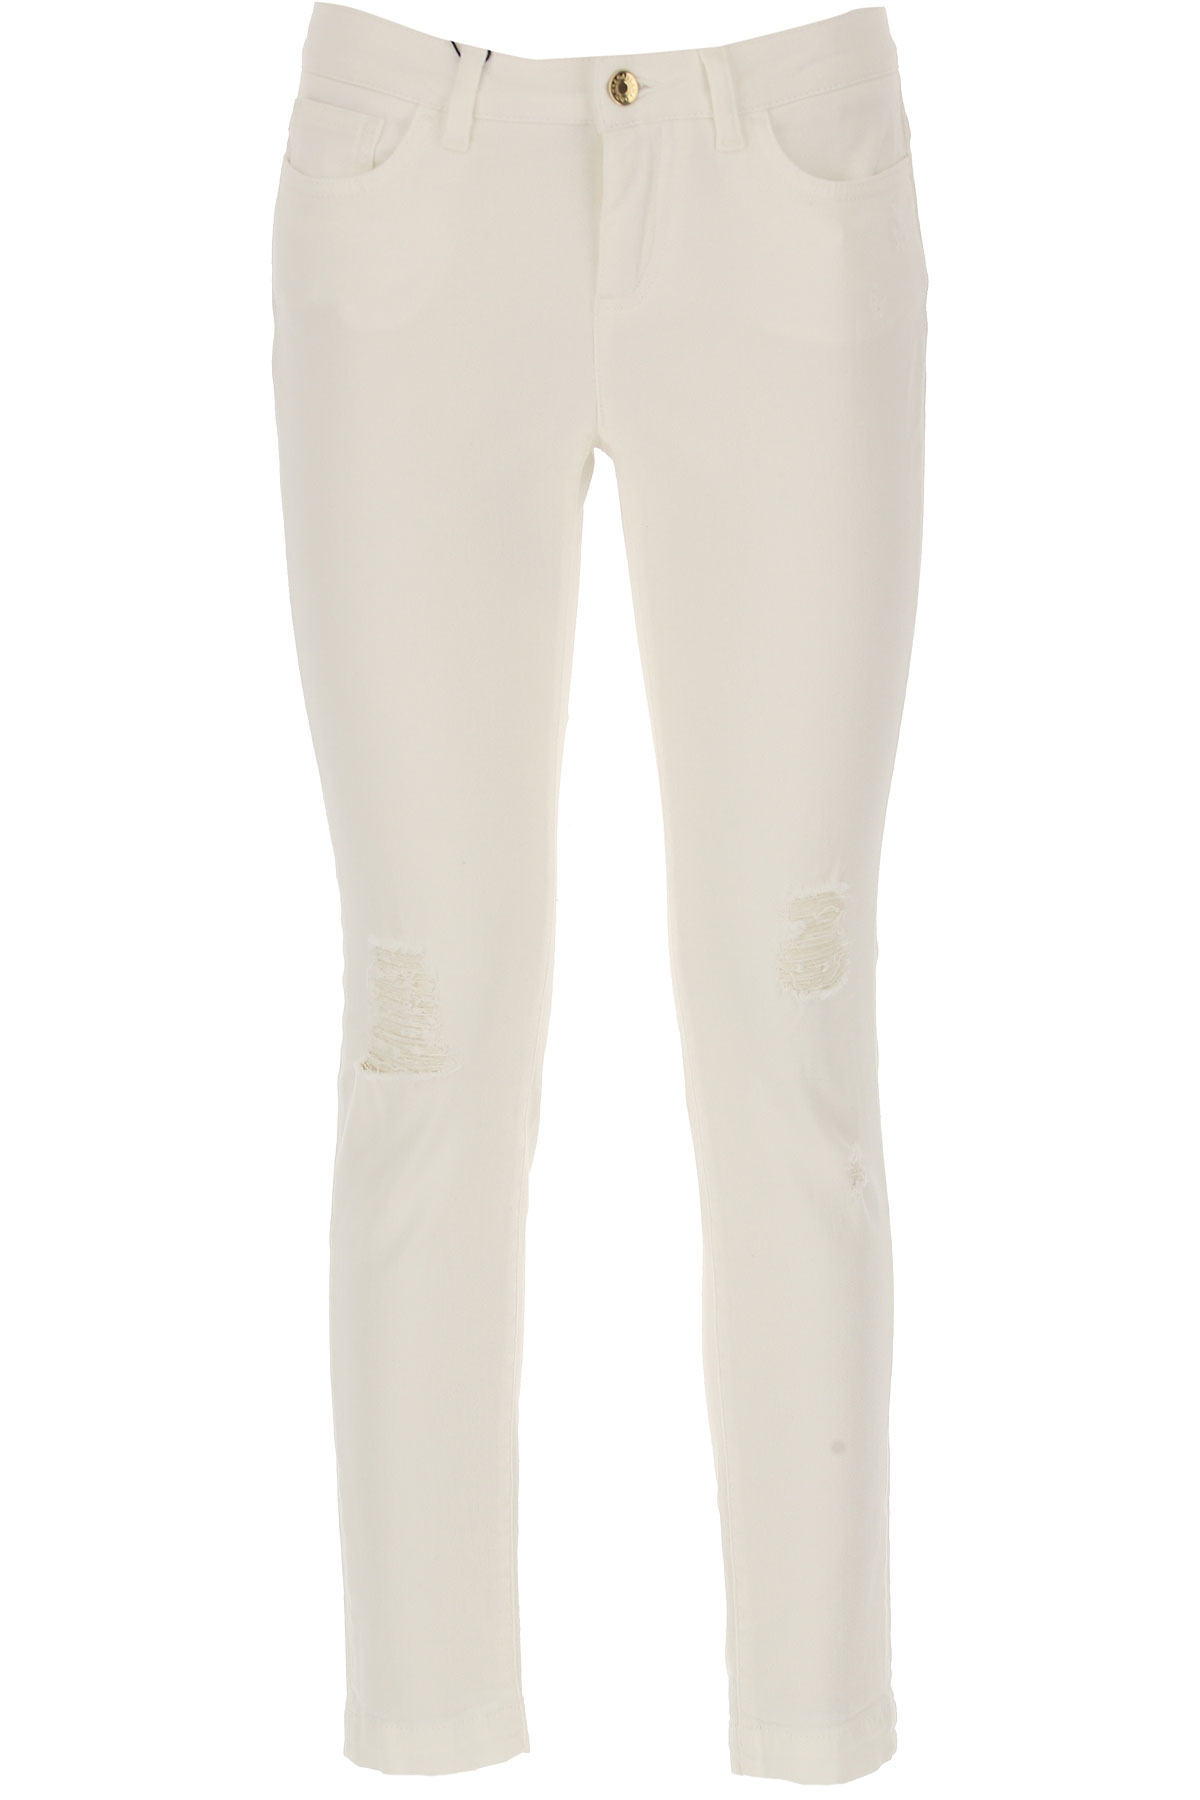 Dolce & Gabbana Jeans, White, Cotton, 2017, 24 26